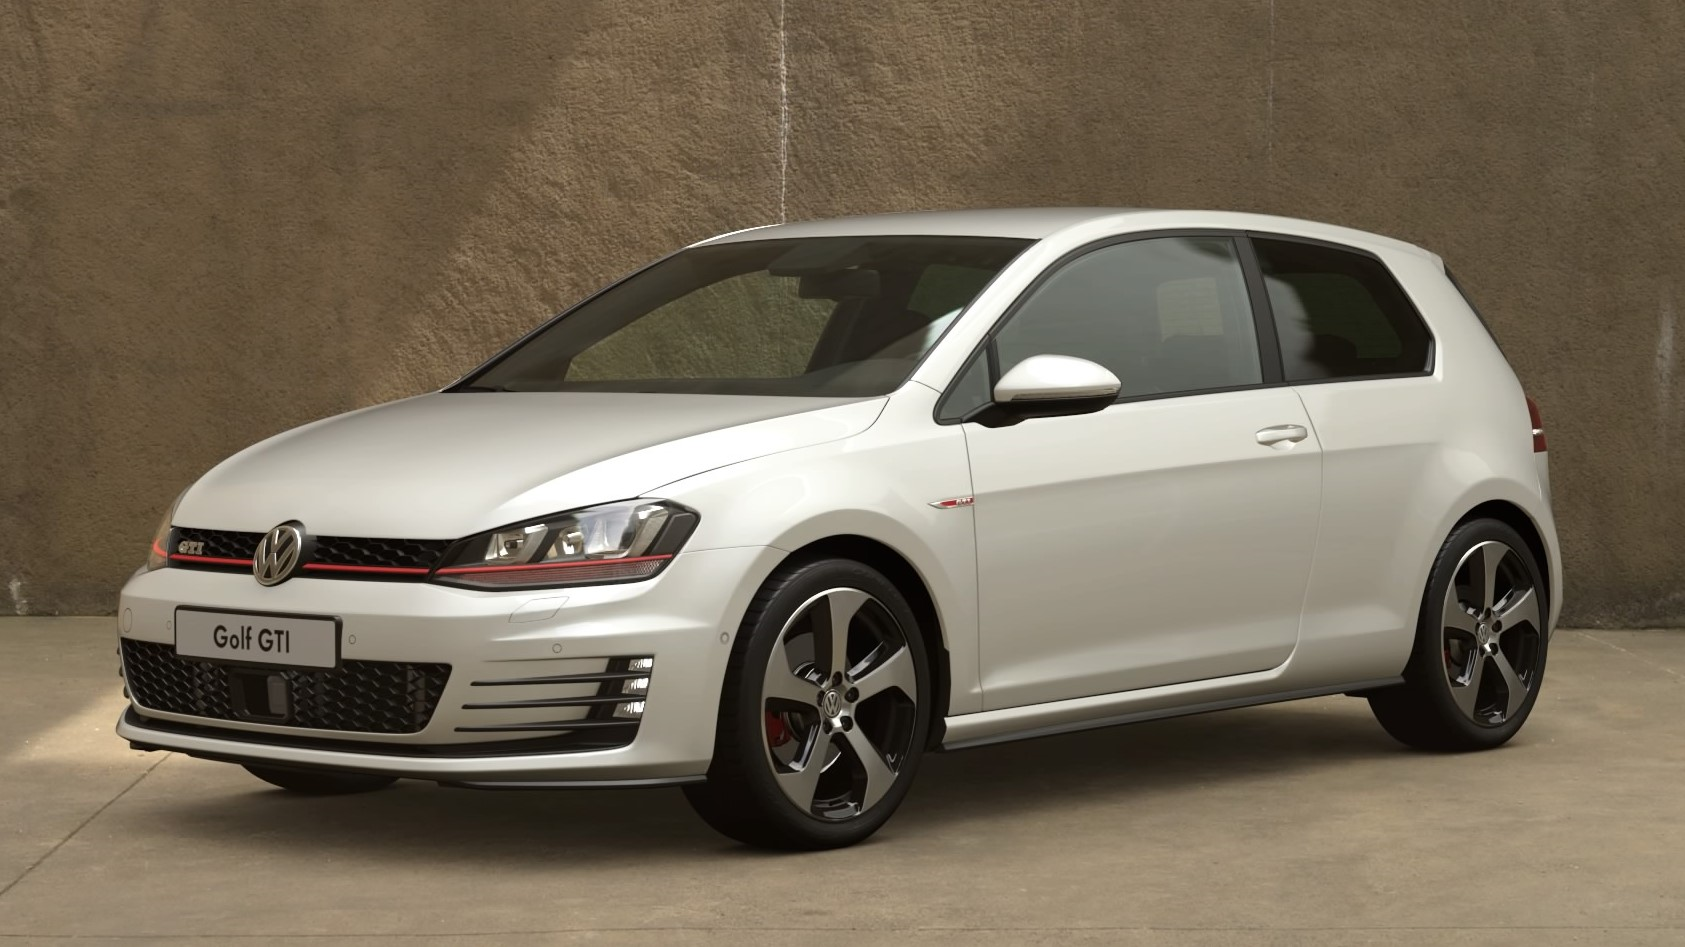 volkswagen golf vii gti 39 14 gran turismo wiki fandom powered by wikia. Black Bedroom Furniture Sets. Home Design Ideas